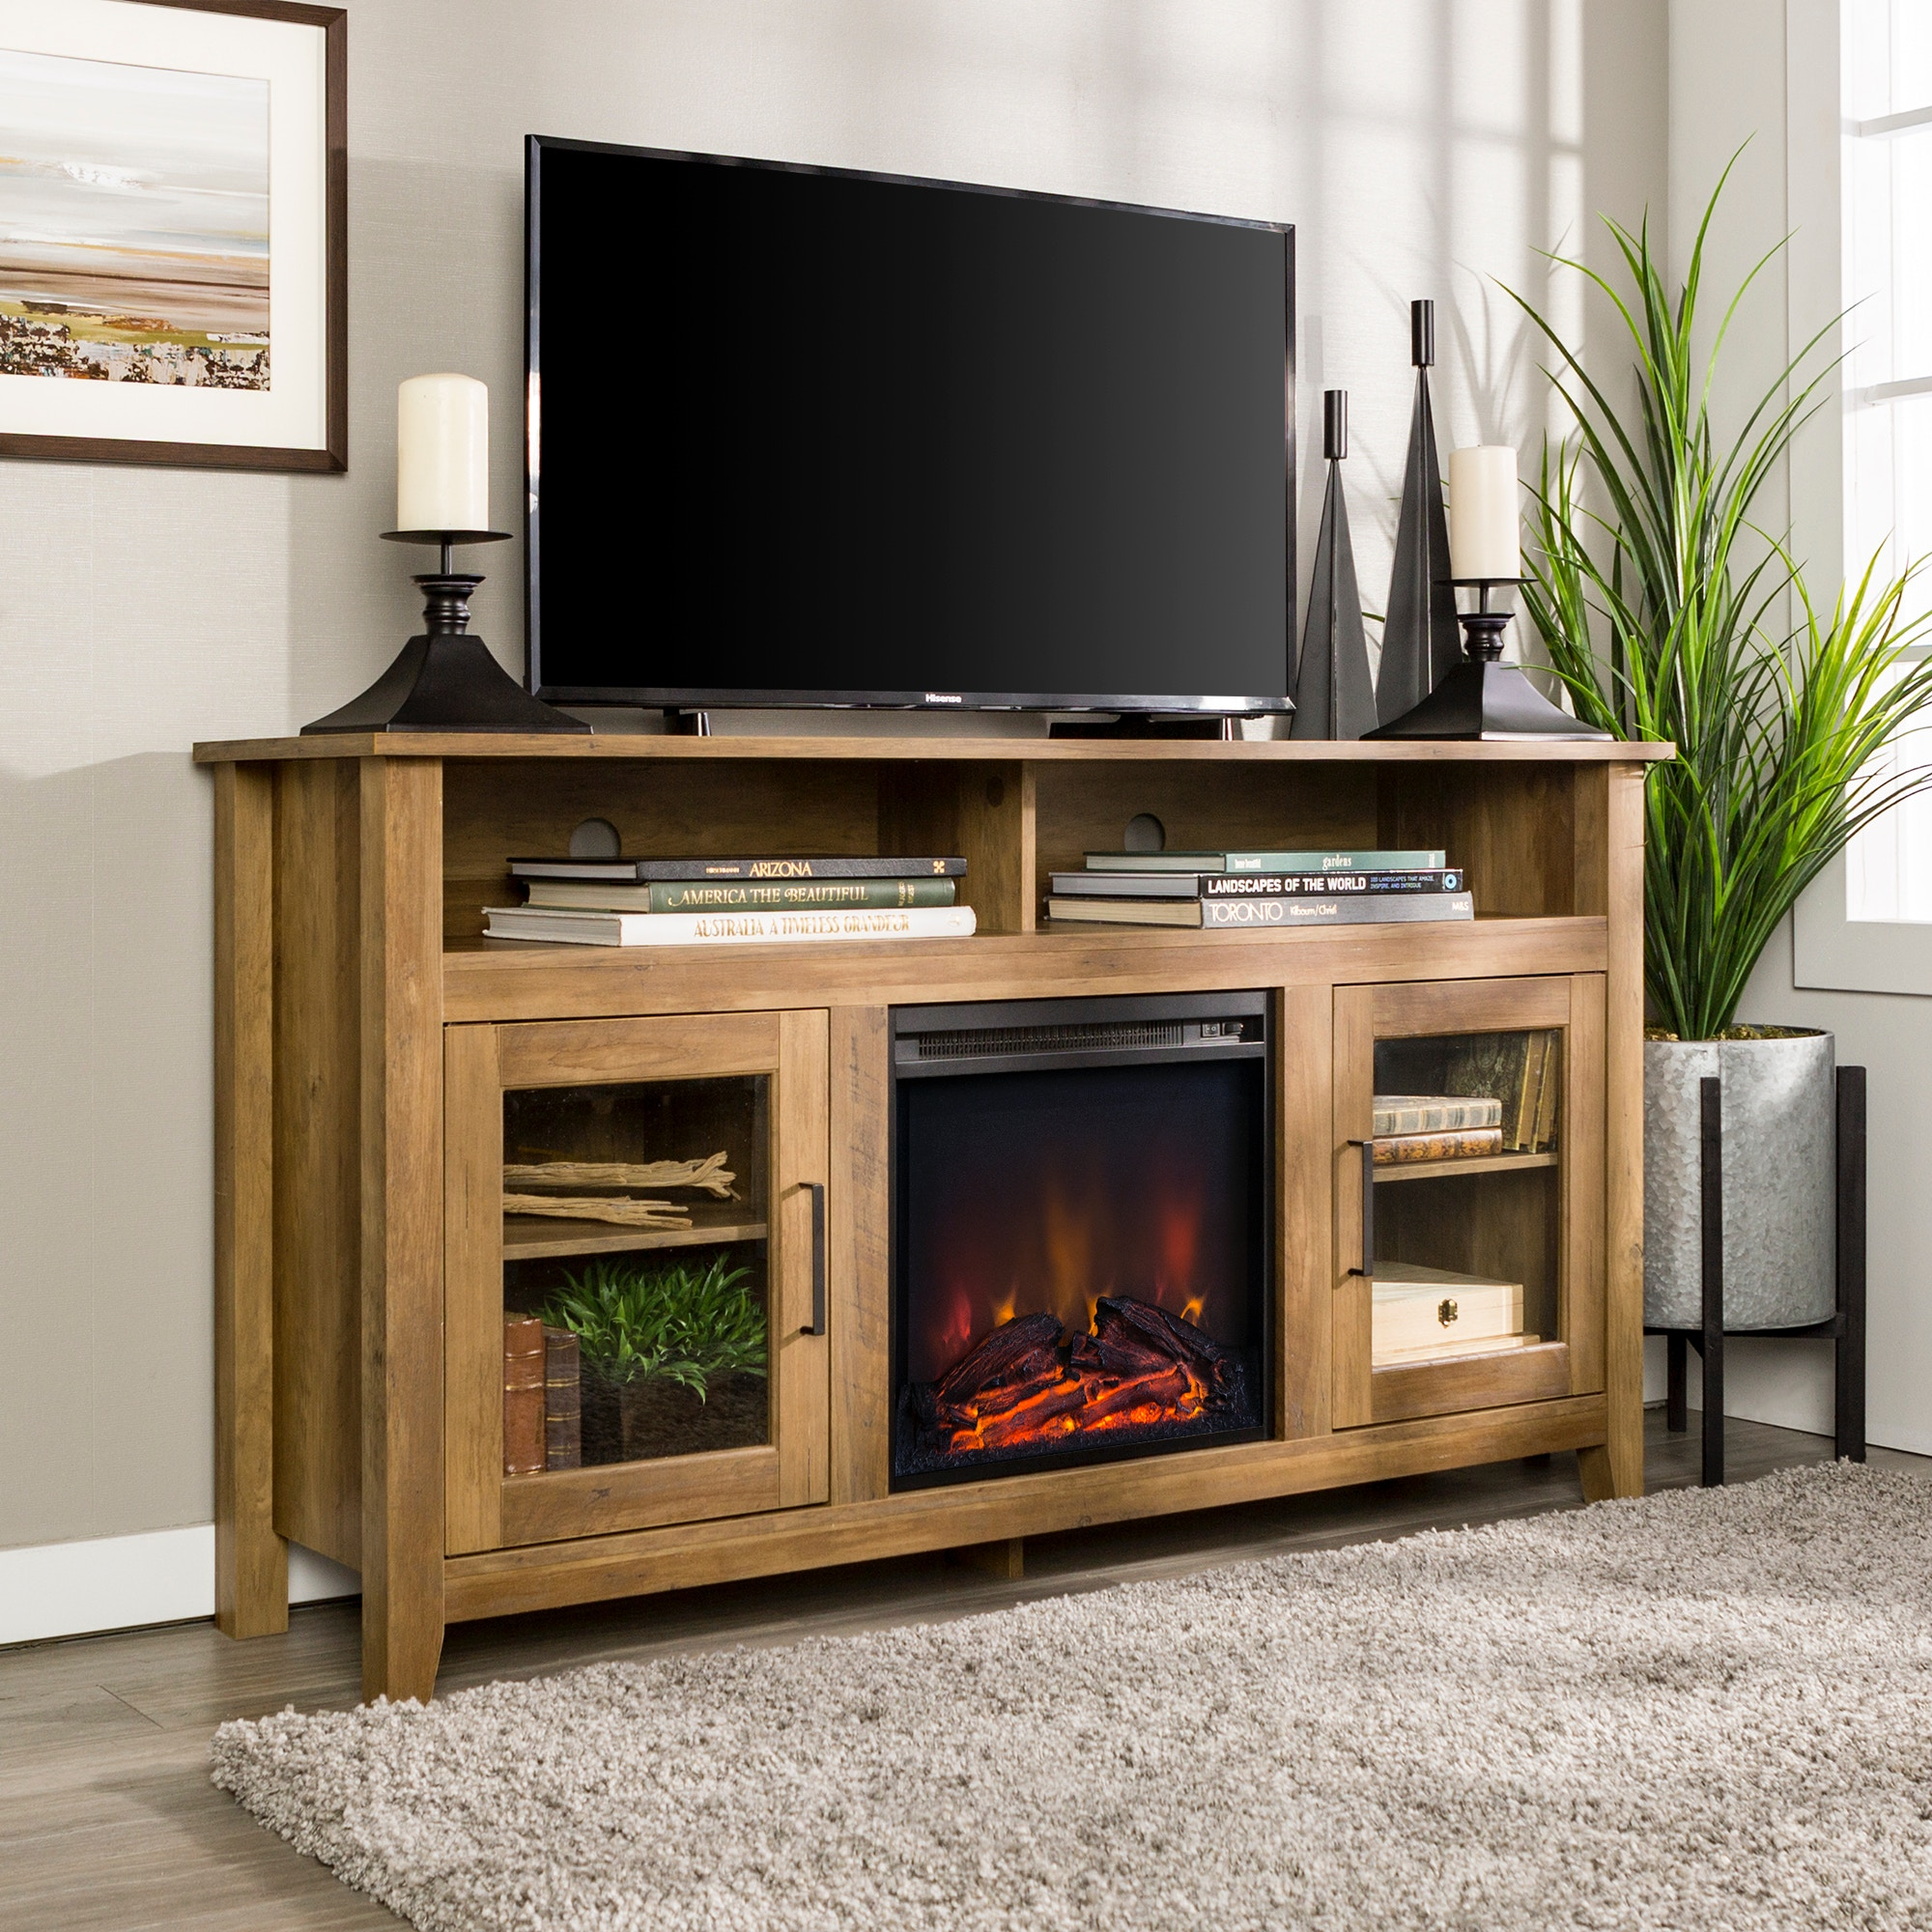 58 Transitional Glass Wood Highboy Electric Fireplace Tv Stand